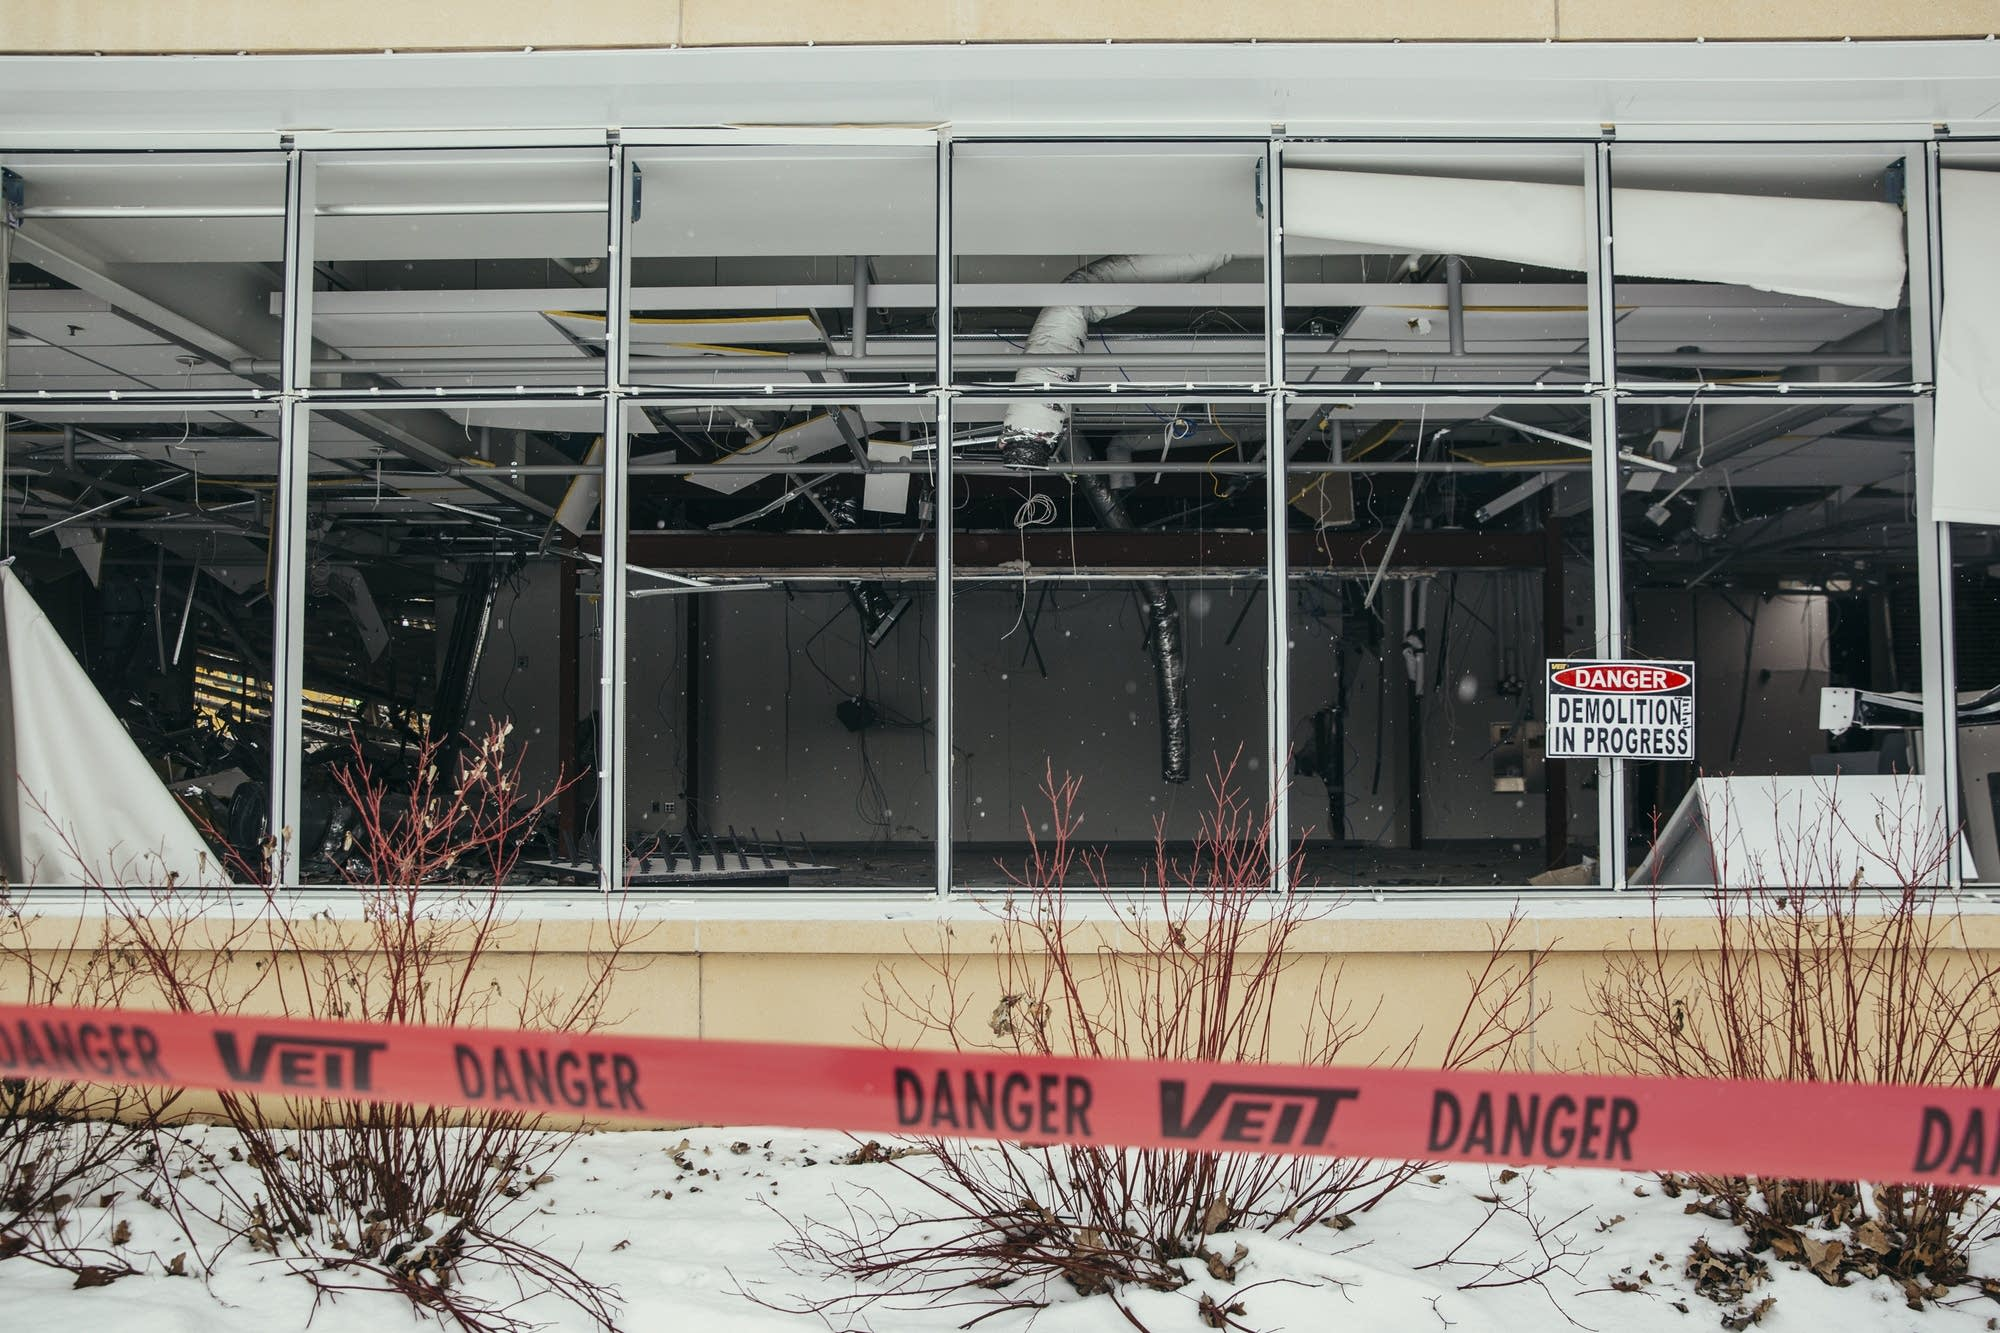 Snow falls in front of the destroyed Minnehaha Academy insides.